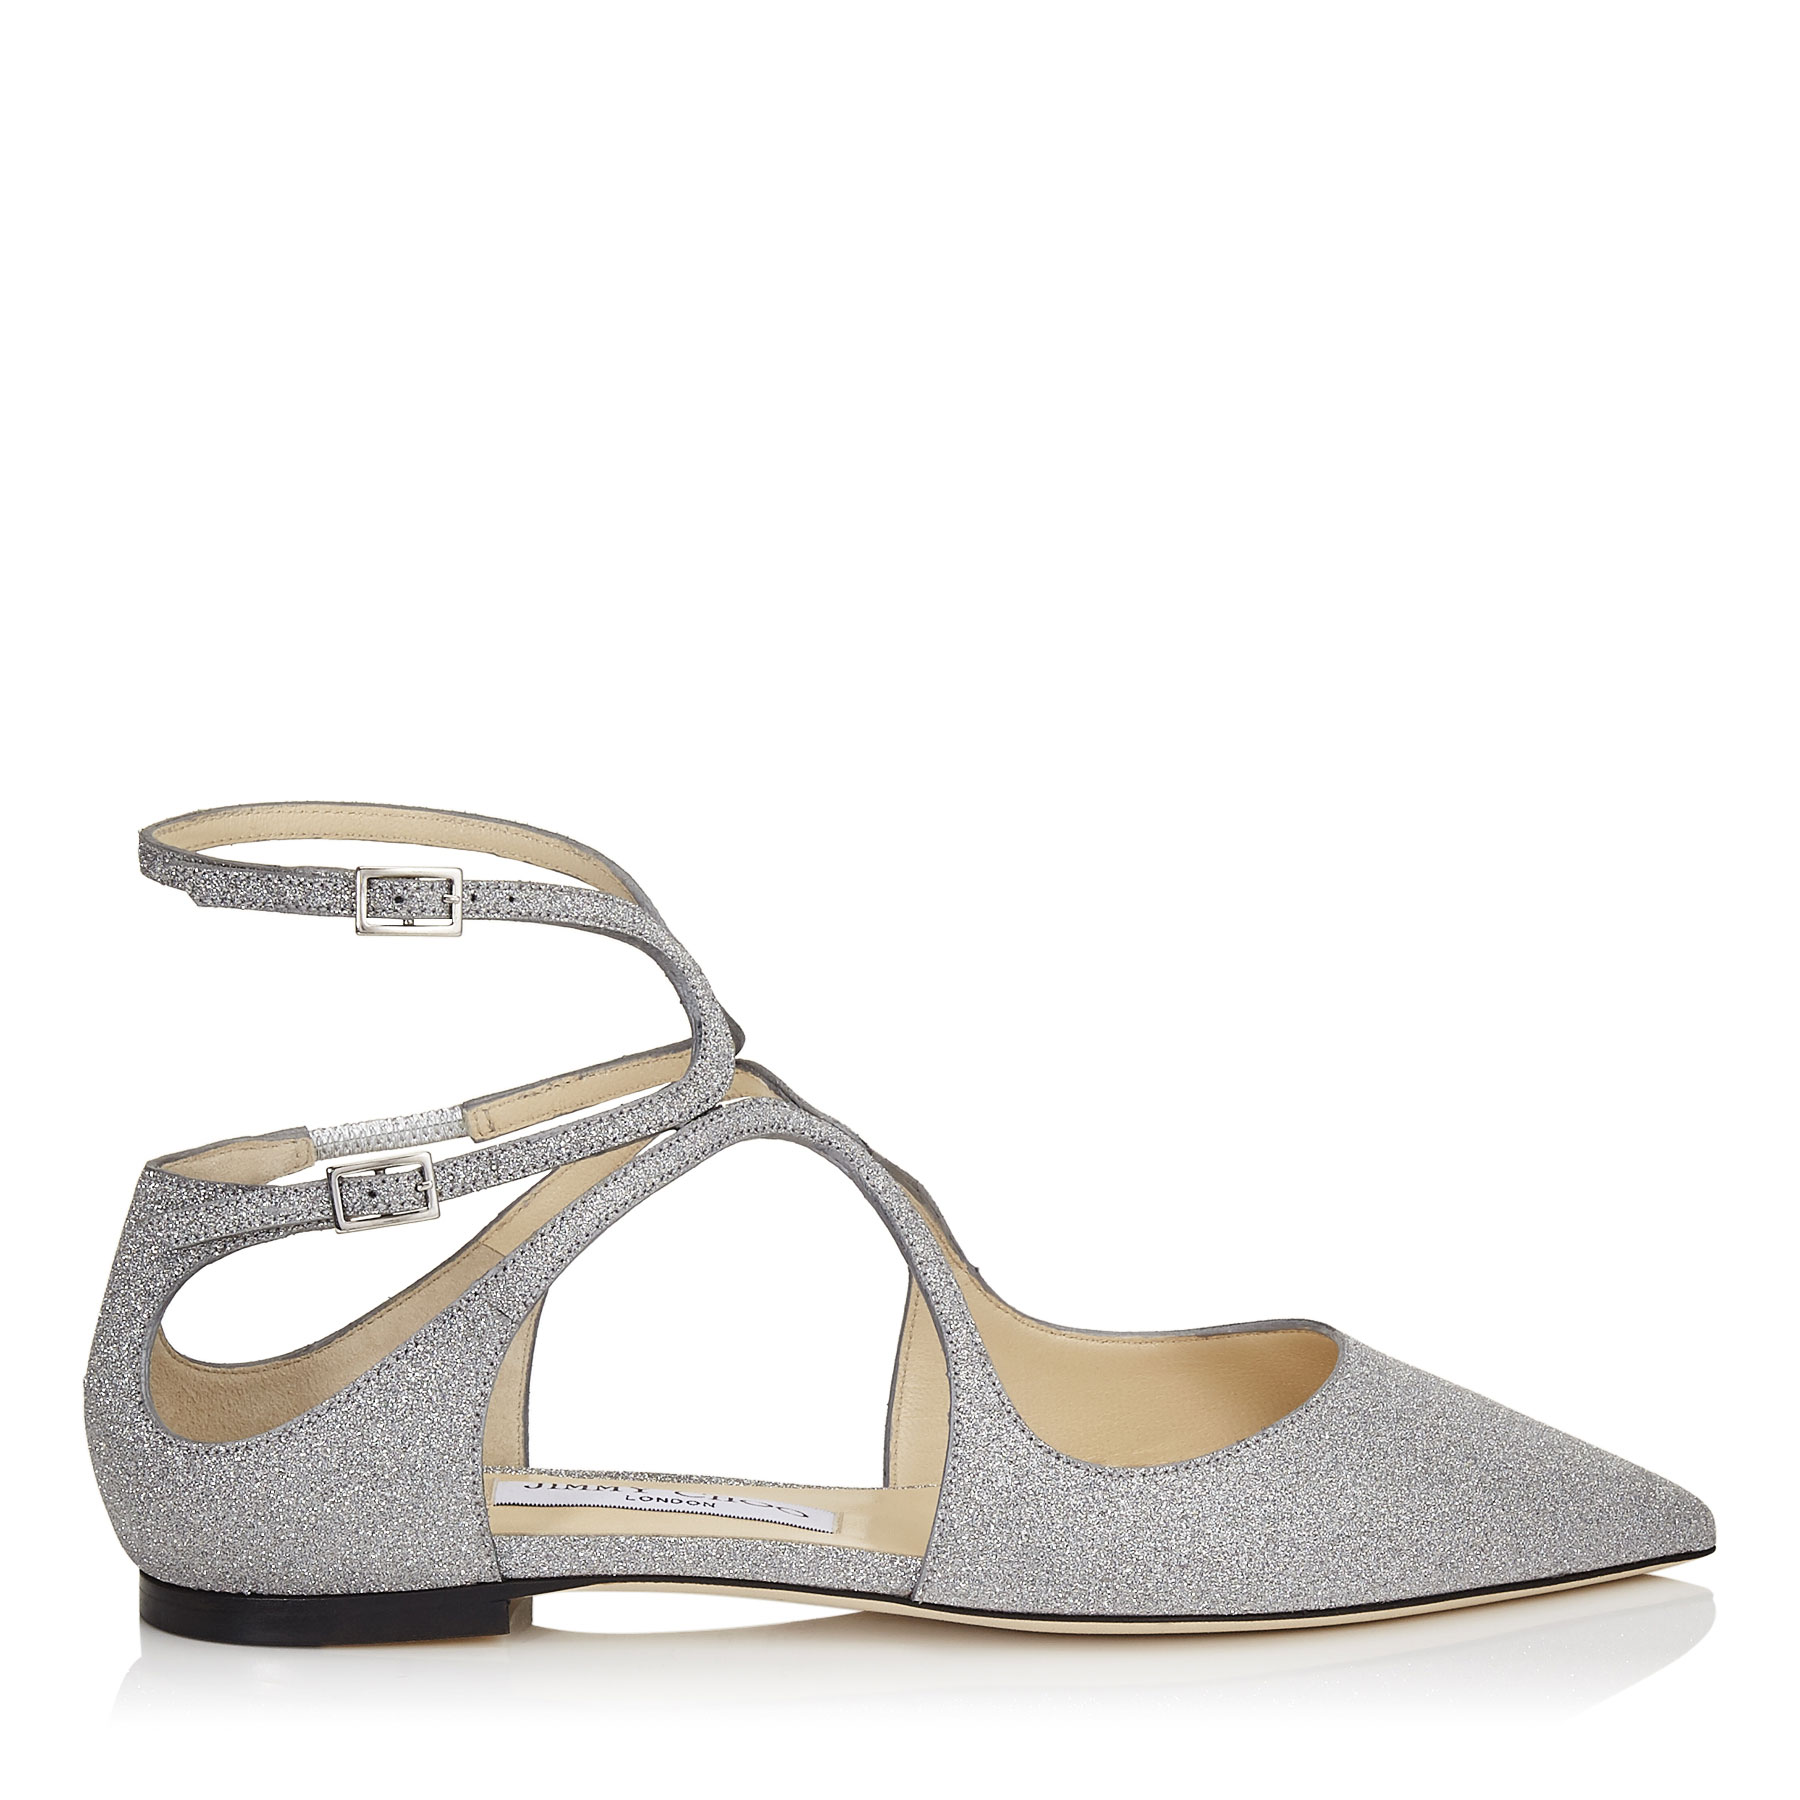 LANCER FLAT Silver Fine Glitter Leather Pointy Toe Flats by Jimmy Choo